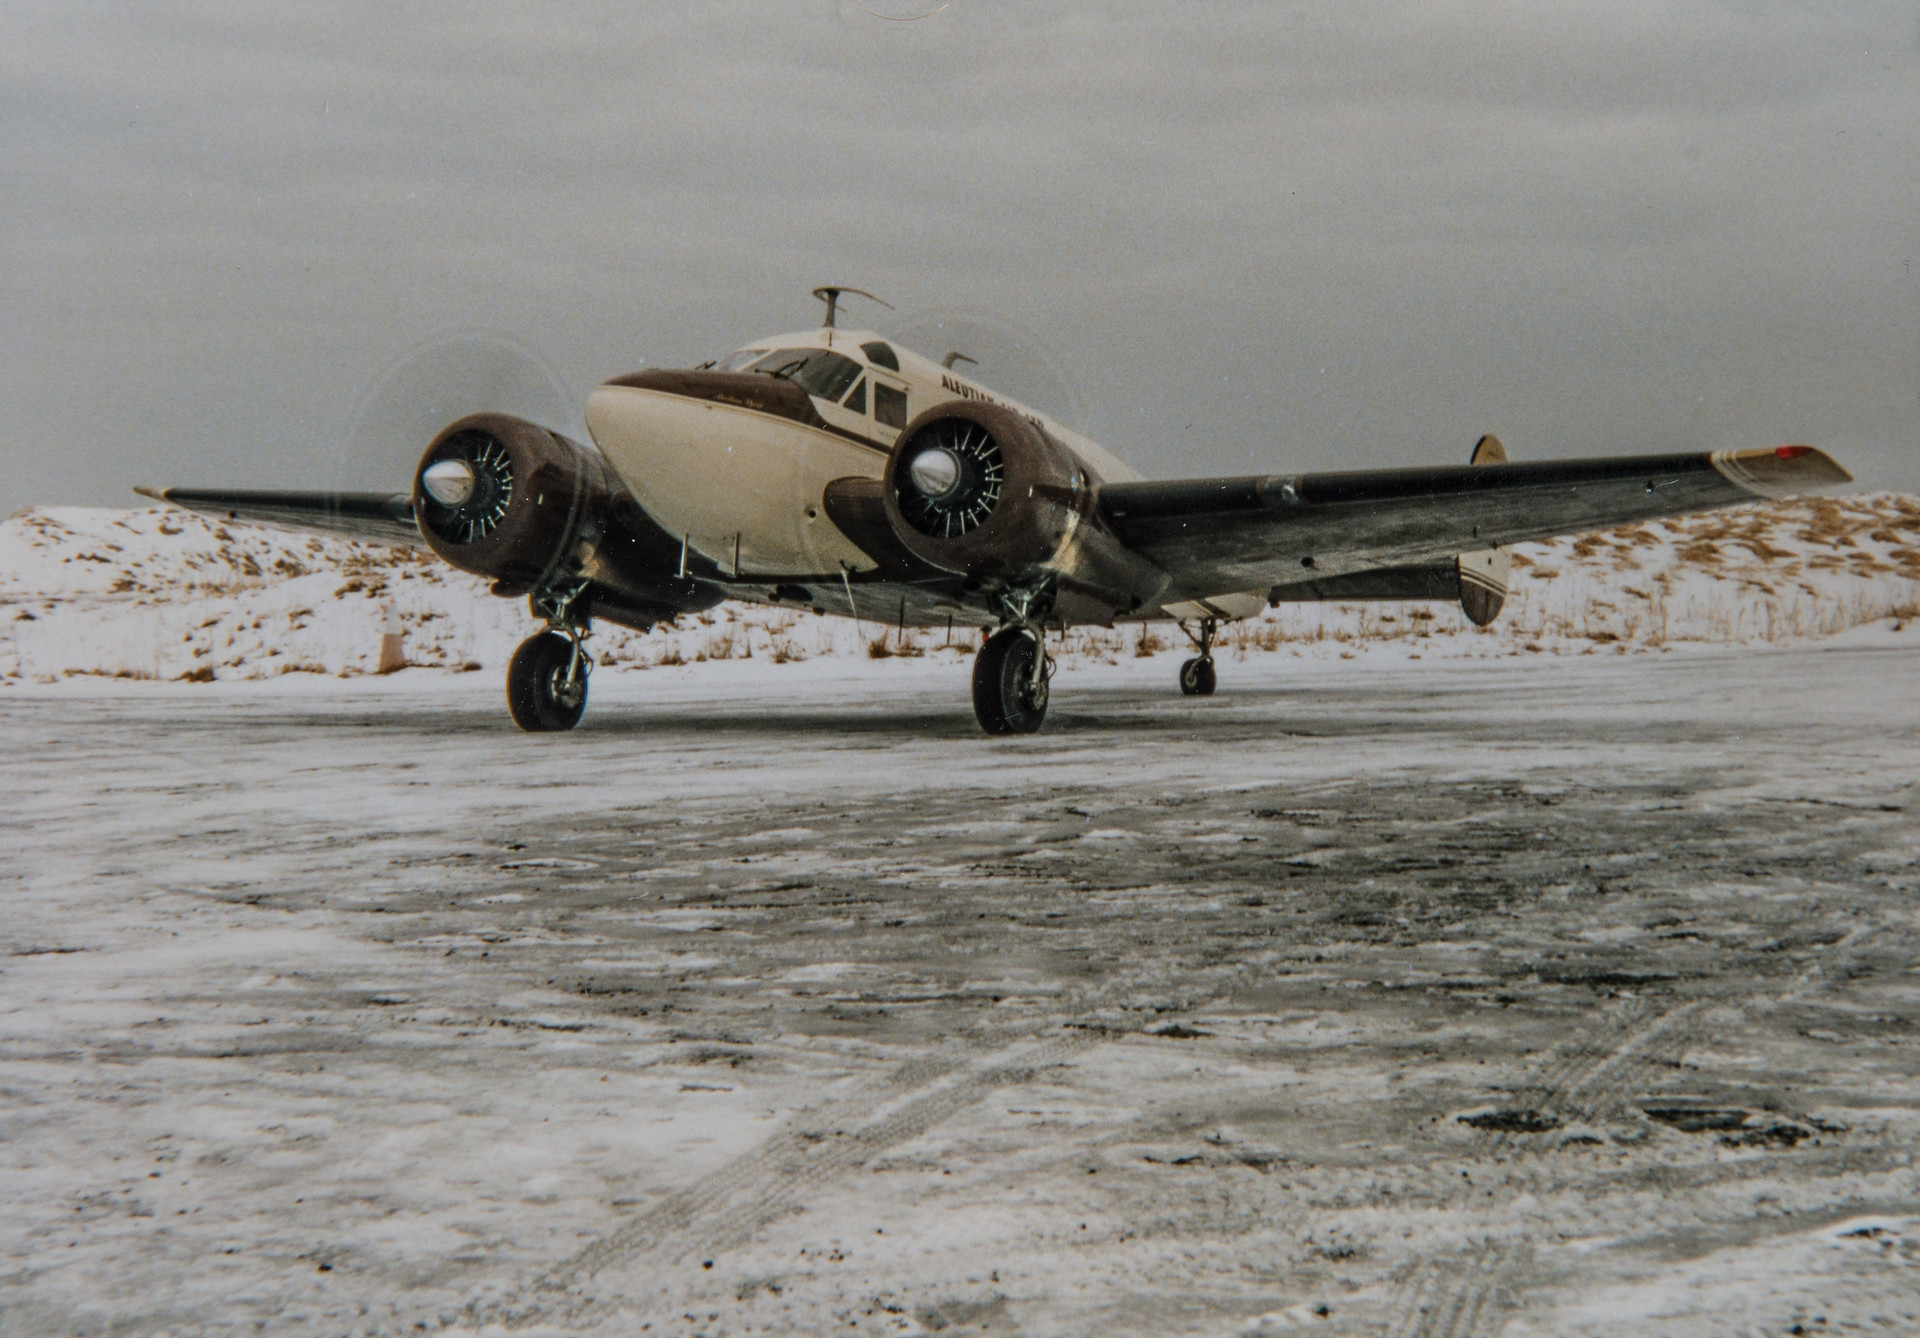 Aleutian Airlines - Tom Madsen in his 1959 Beech E18S